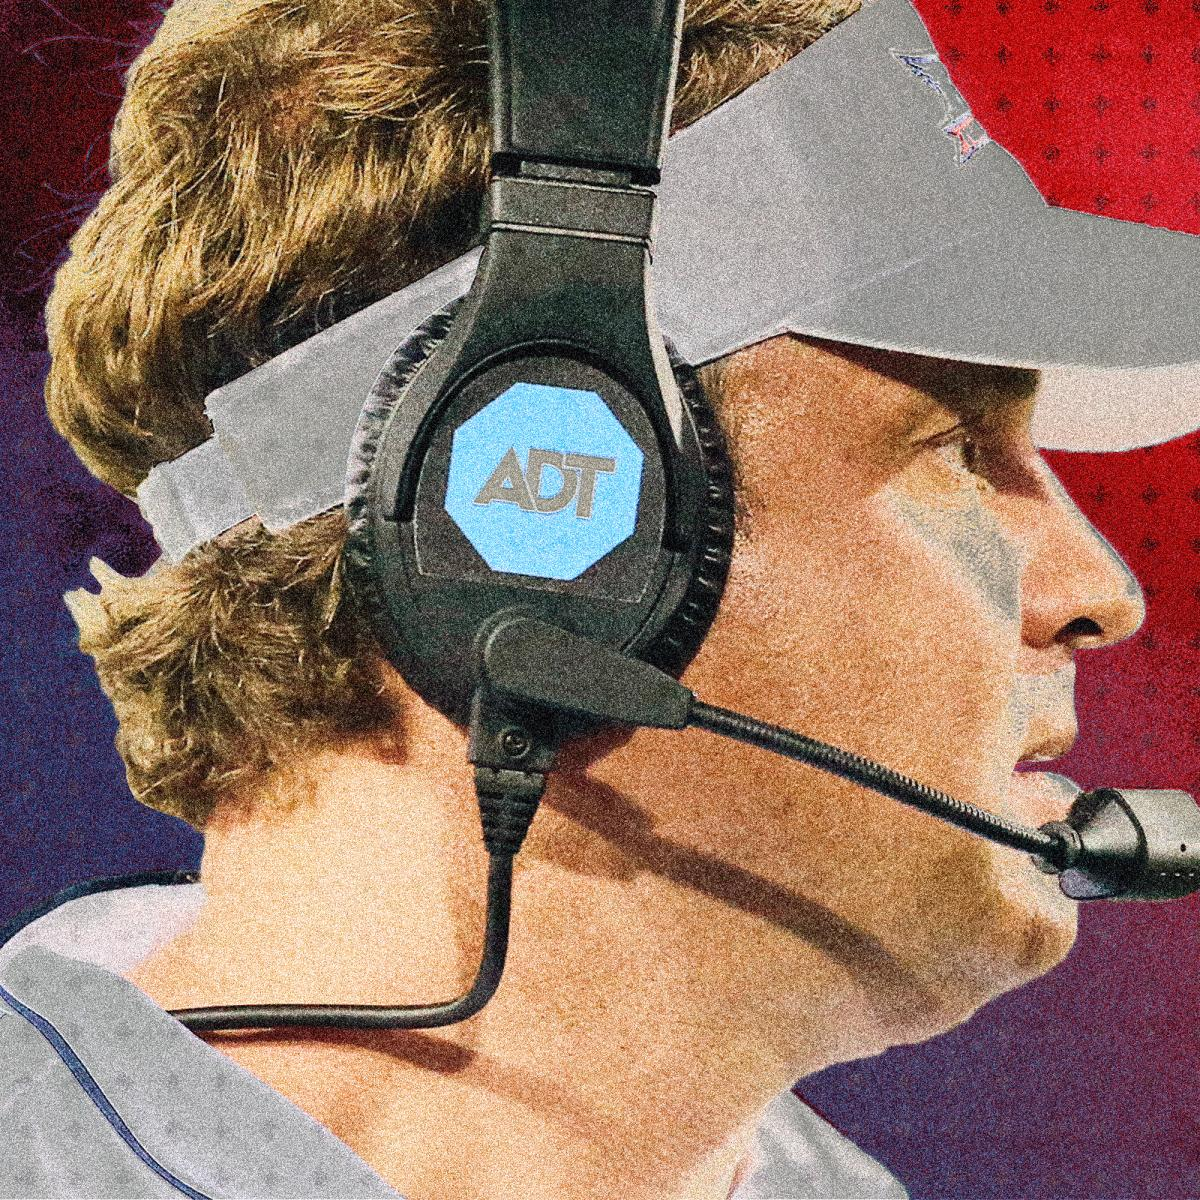 Introspective and at Peace, Lane Kiffin Talks About His Path to a Happier Place